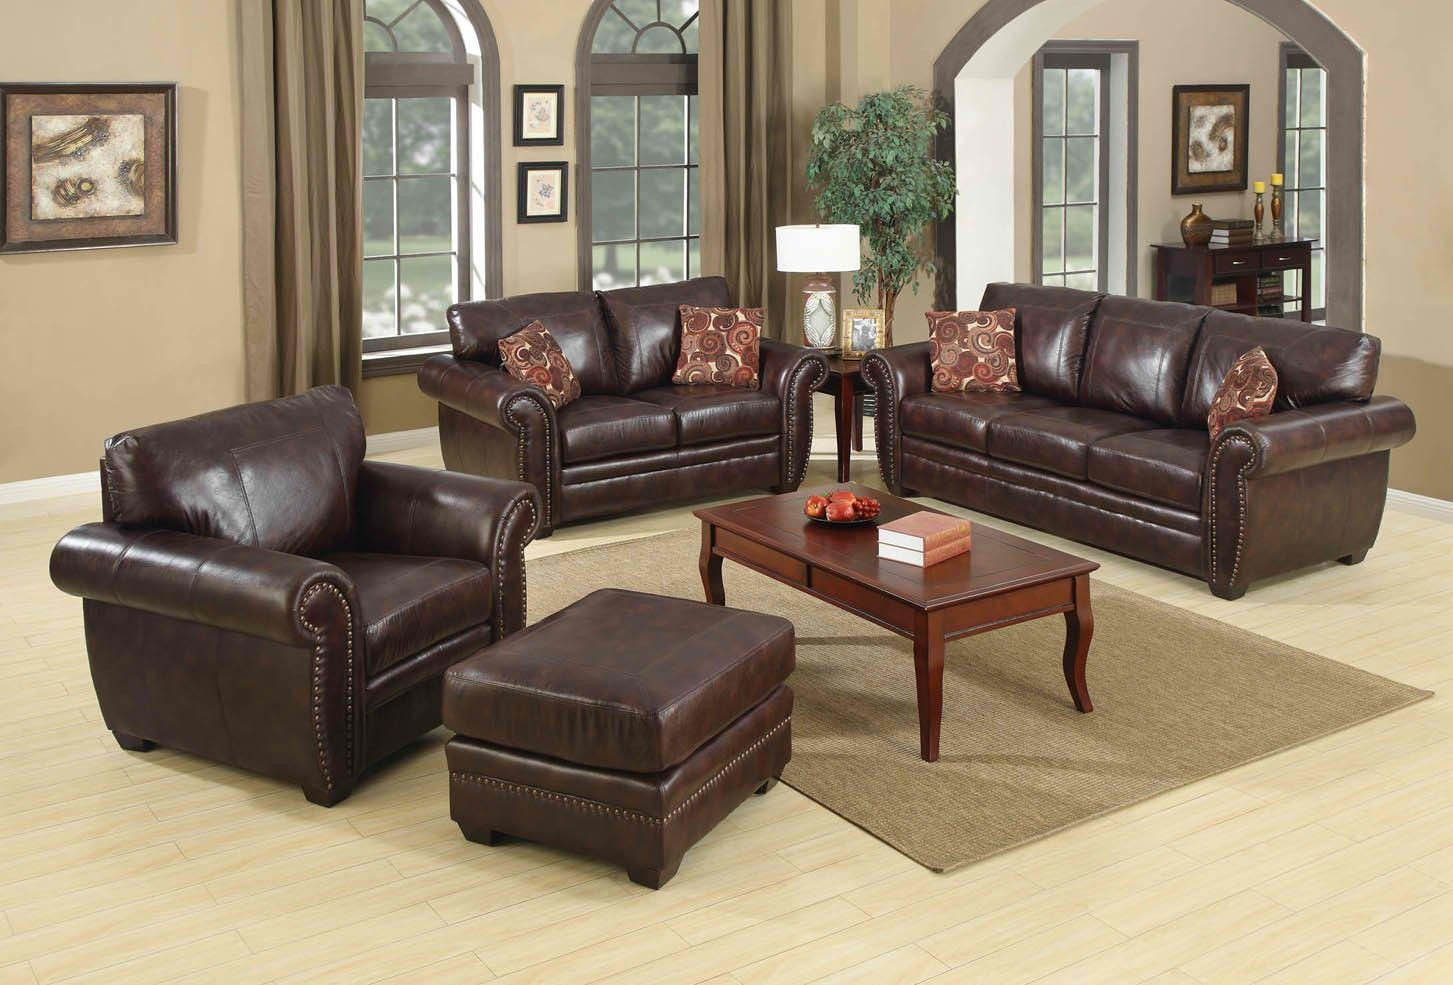 Brown Leather Sofa Living Room Ideas Brown Leather Couch Living